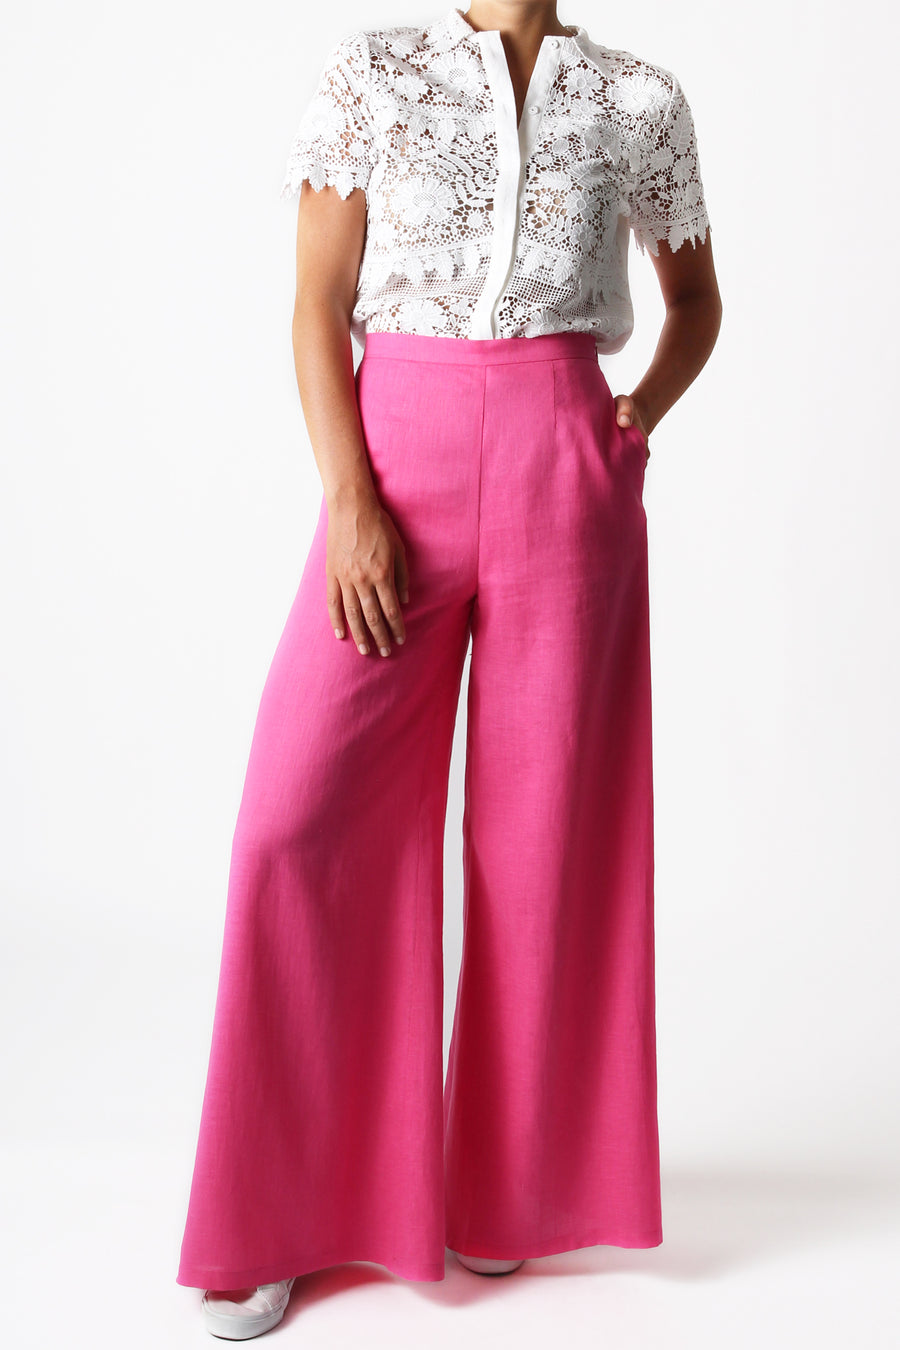 This is a photo of a woman from the neck down, she is wearing a button front, lace tired blouse tucked into a pair of bright pink, flare leg pants. She has her hand in the left side pocket of the pants.